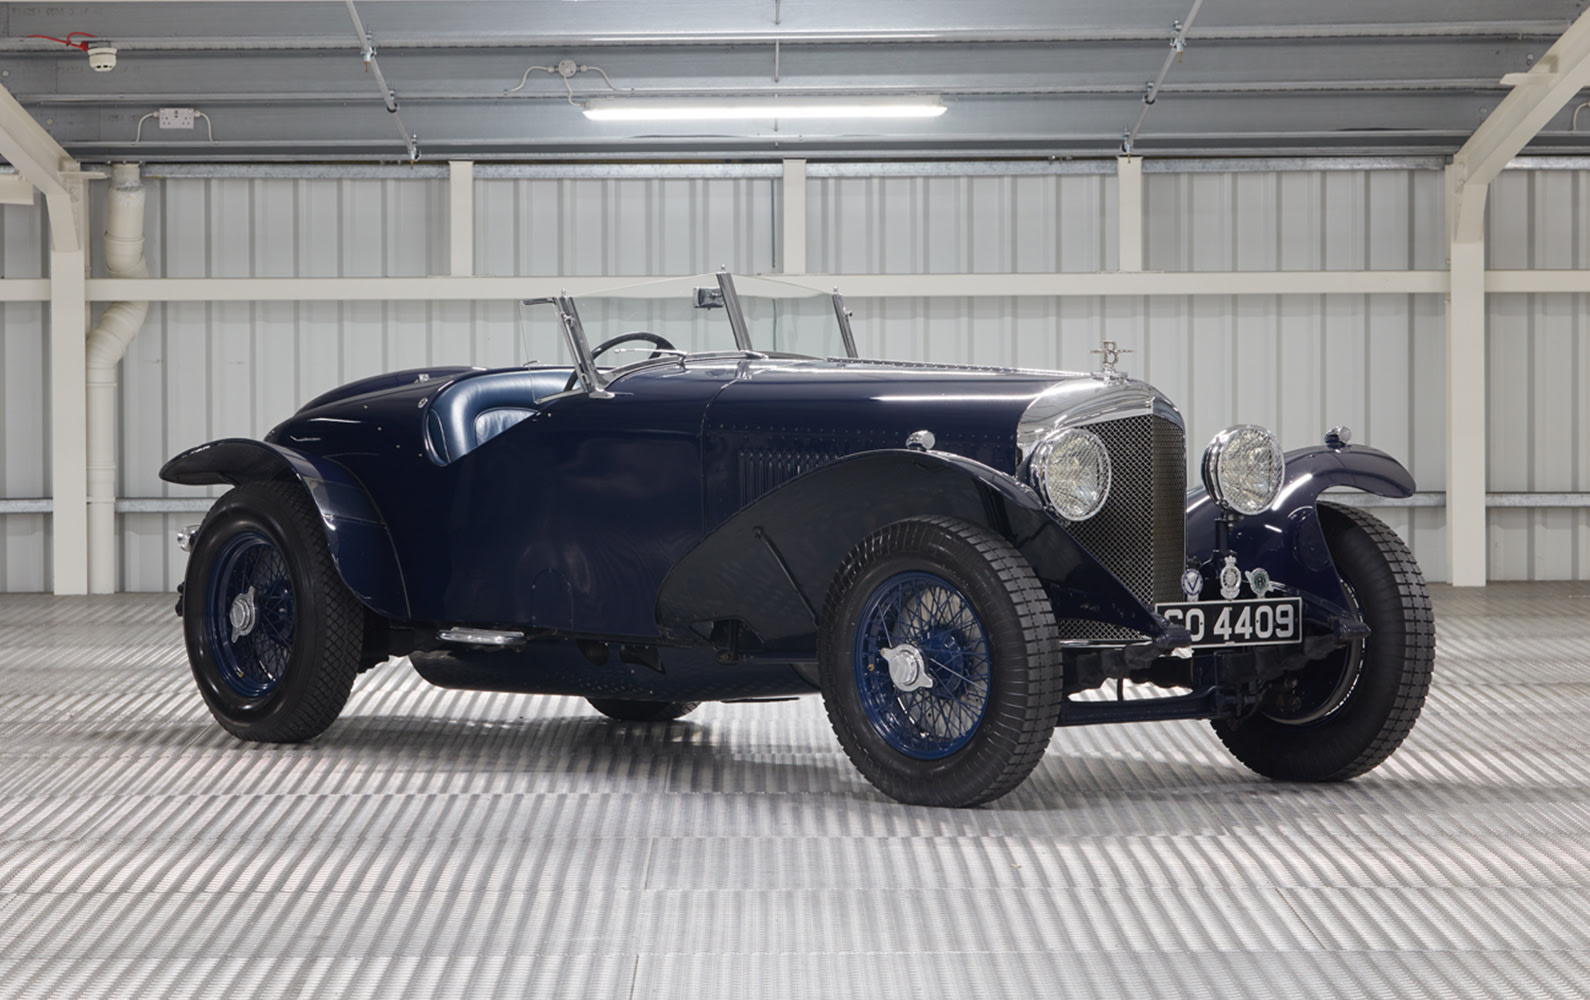 Prod/O21B - UK 2021/1931 Bentley 8 Litre Pointed Tail Two Seater/Hero/1931_Bentley_8_Litre_Pointed_Tail_Two_Seater_102_dmc5vw